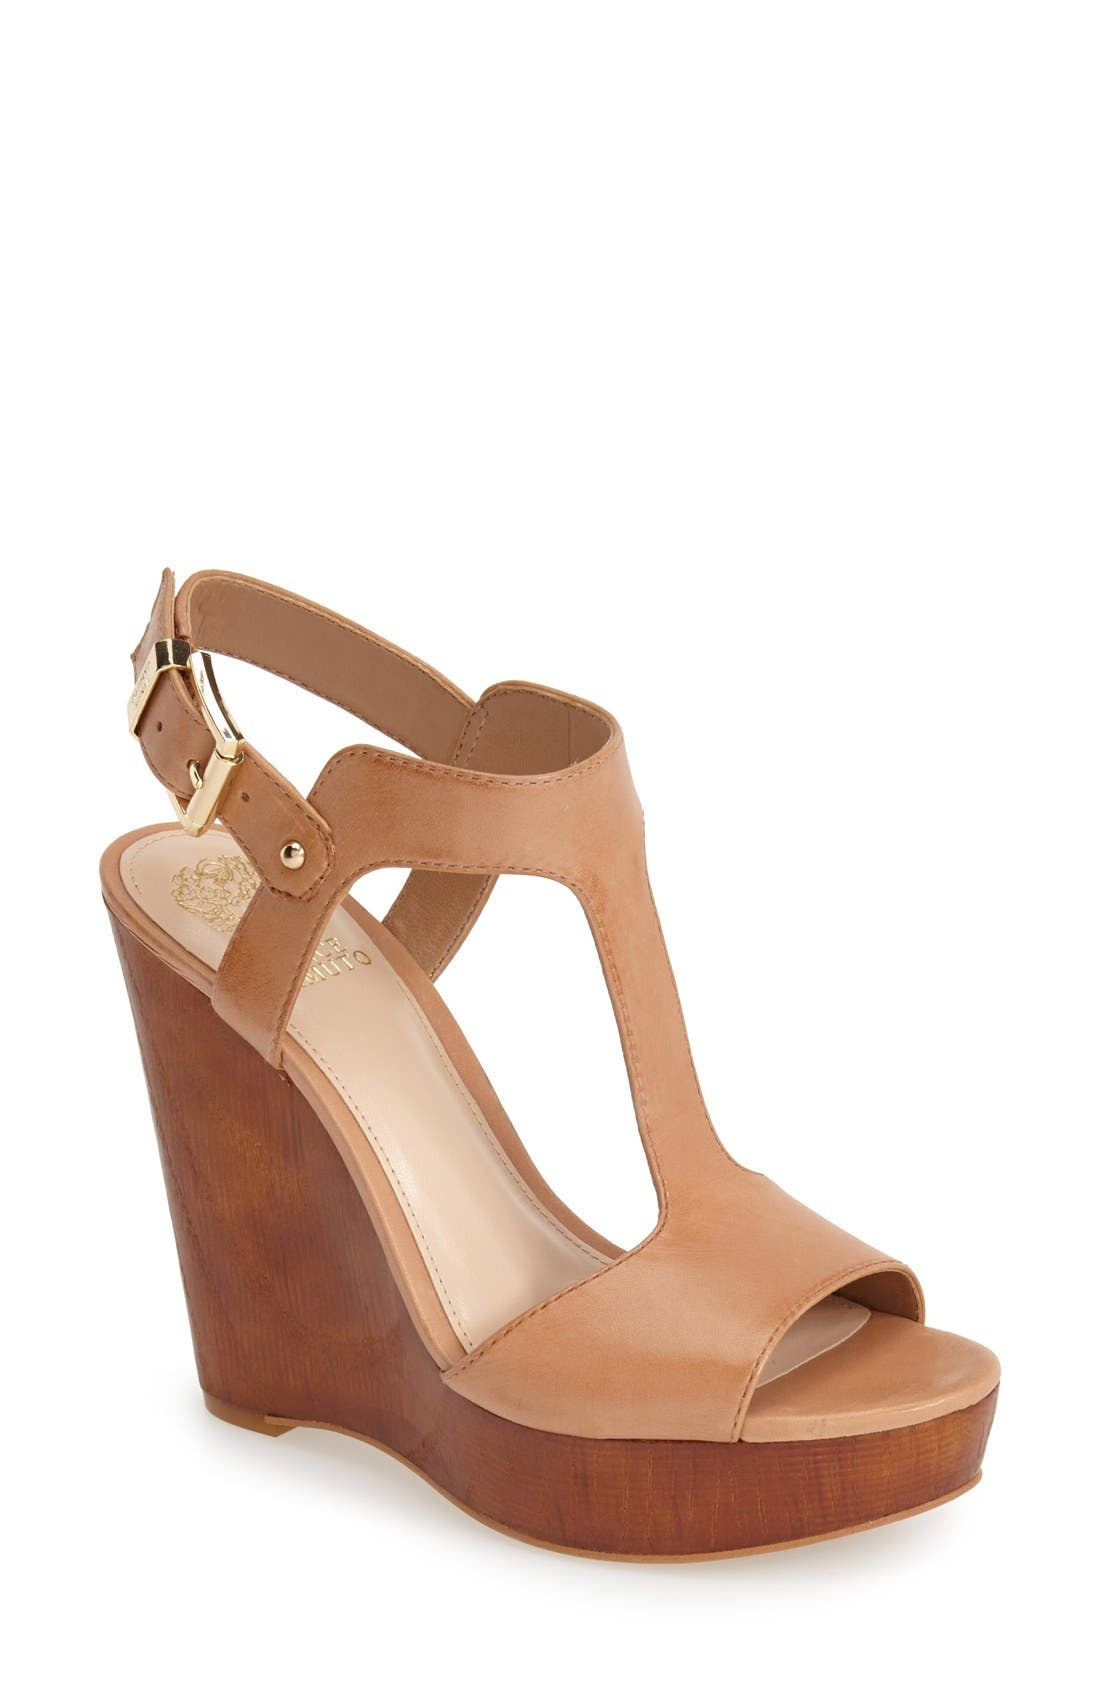 Main Image - Vince Camuto 'Mathis' T-Strap Wedge Sandal (Women)